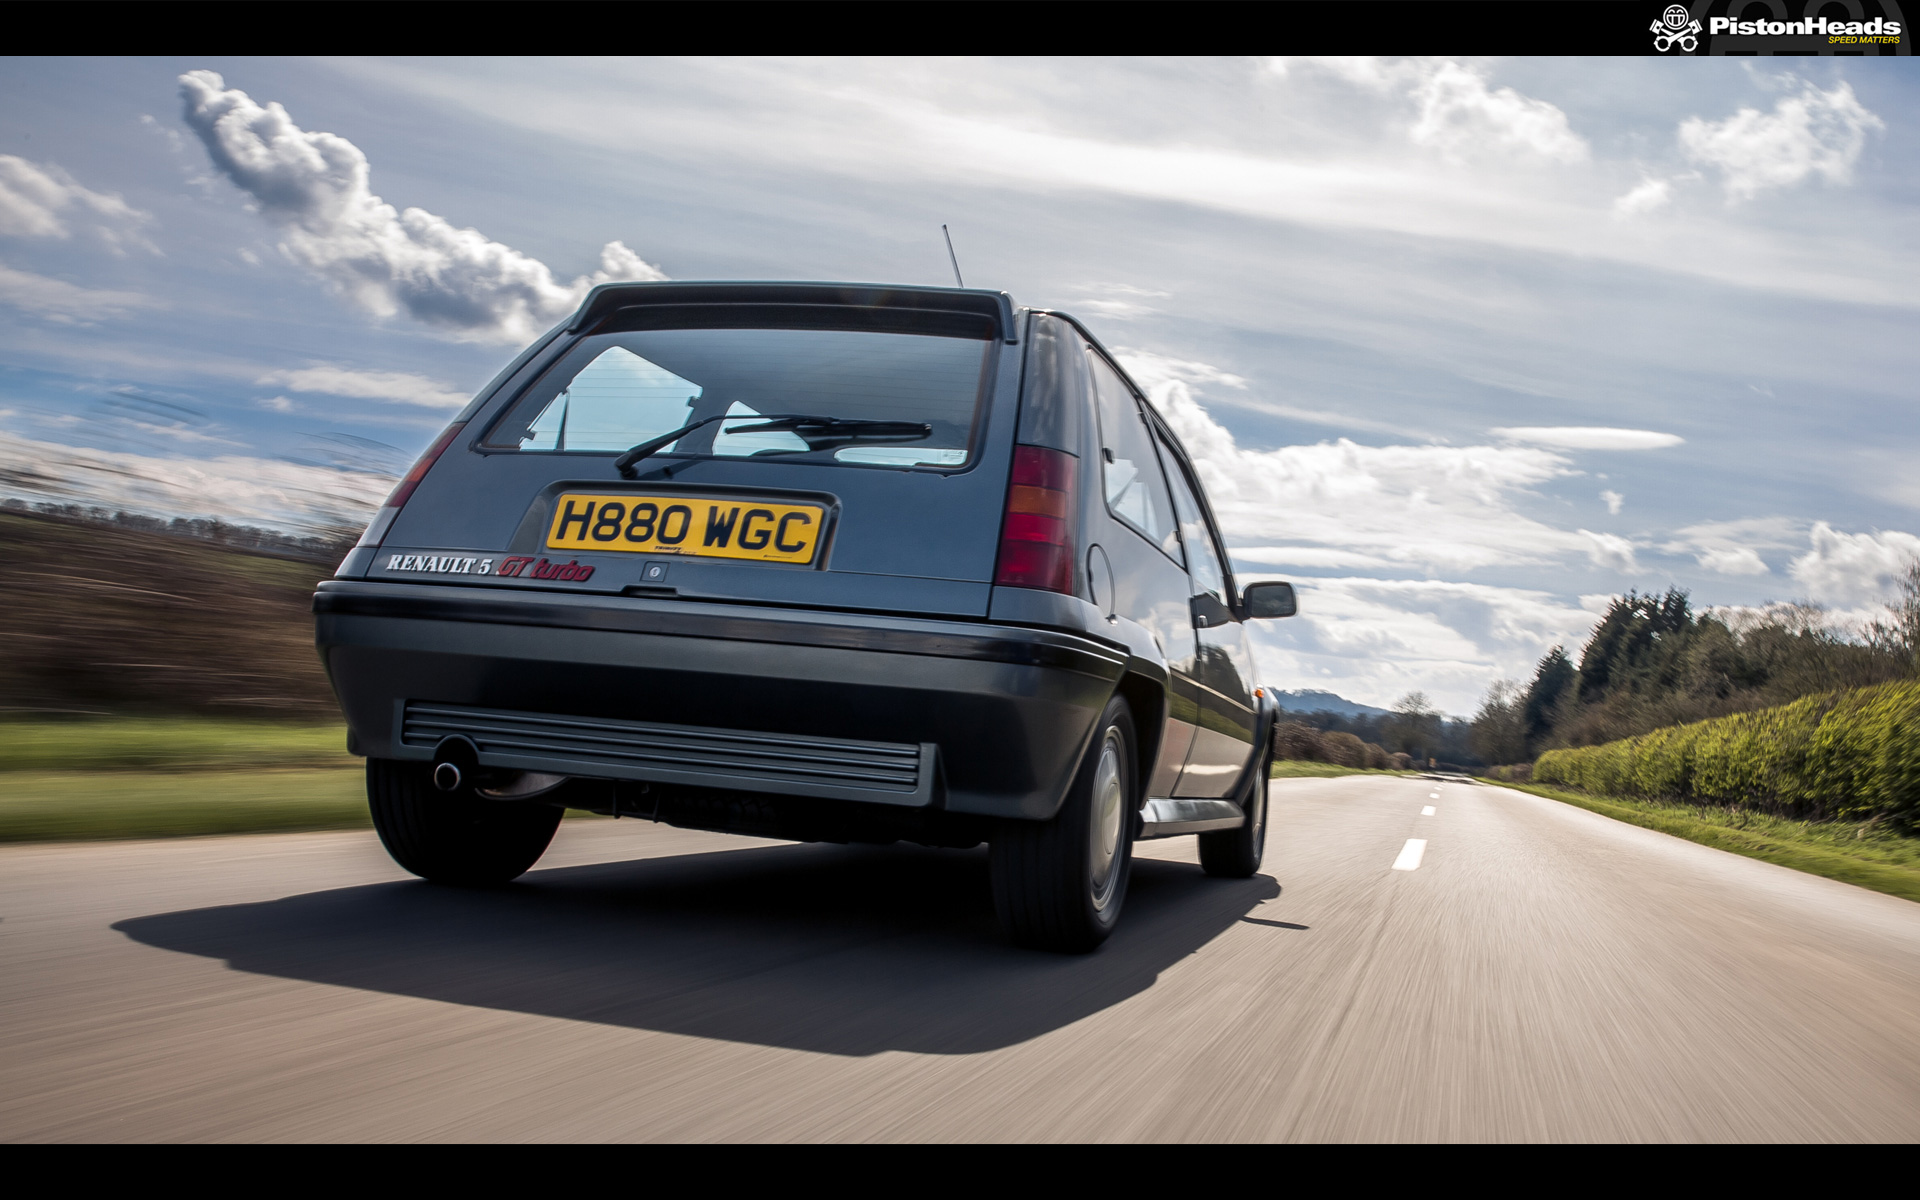 re renault 5 gt turbo pic of the week page 1 general gassing pistonheads. Black Bedroom Furniture Sets. Home Design Ideas